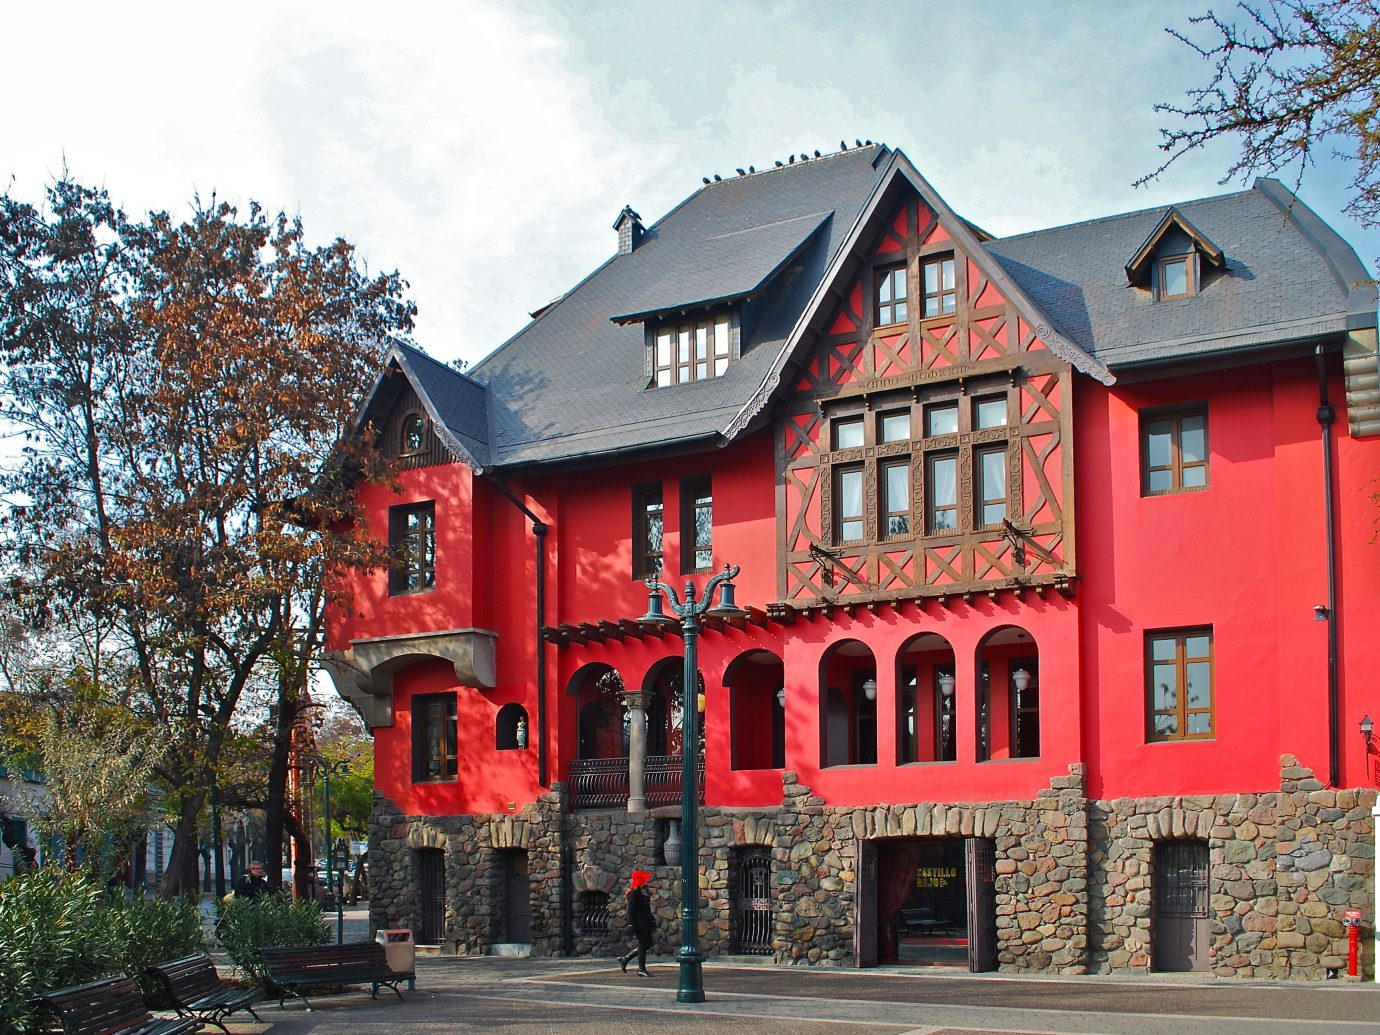 Architecture Boutique Buildings Design Exterior Hotels Romance tree sky outdoor house building Town red neighbourhood facade estate home residential area Downtown old